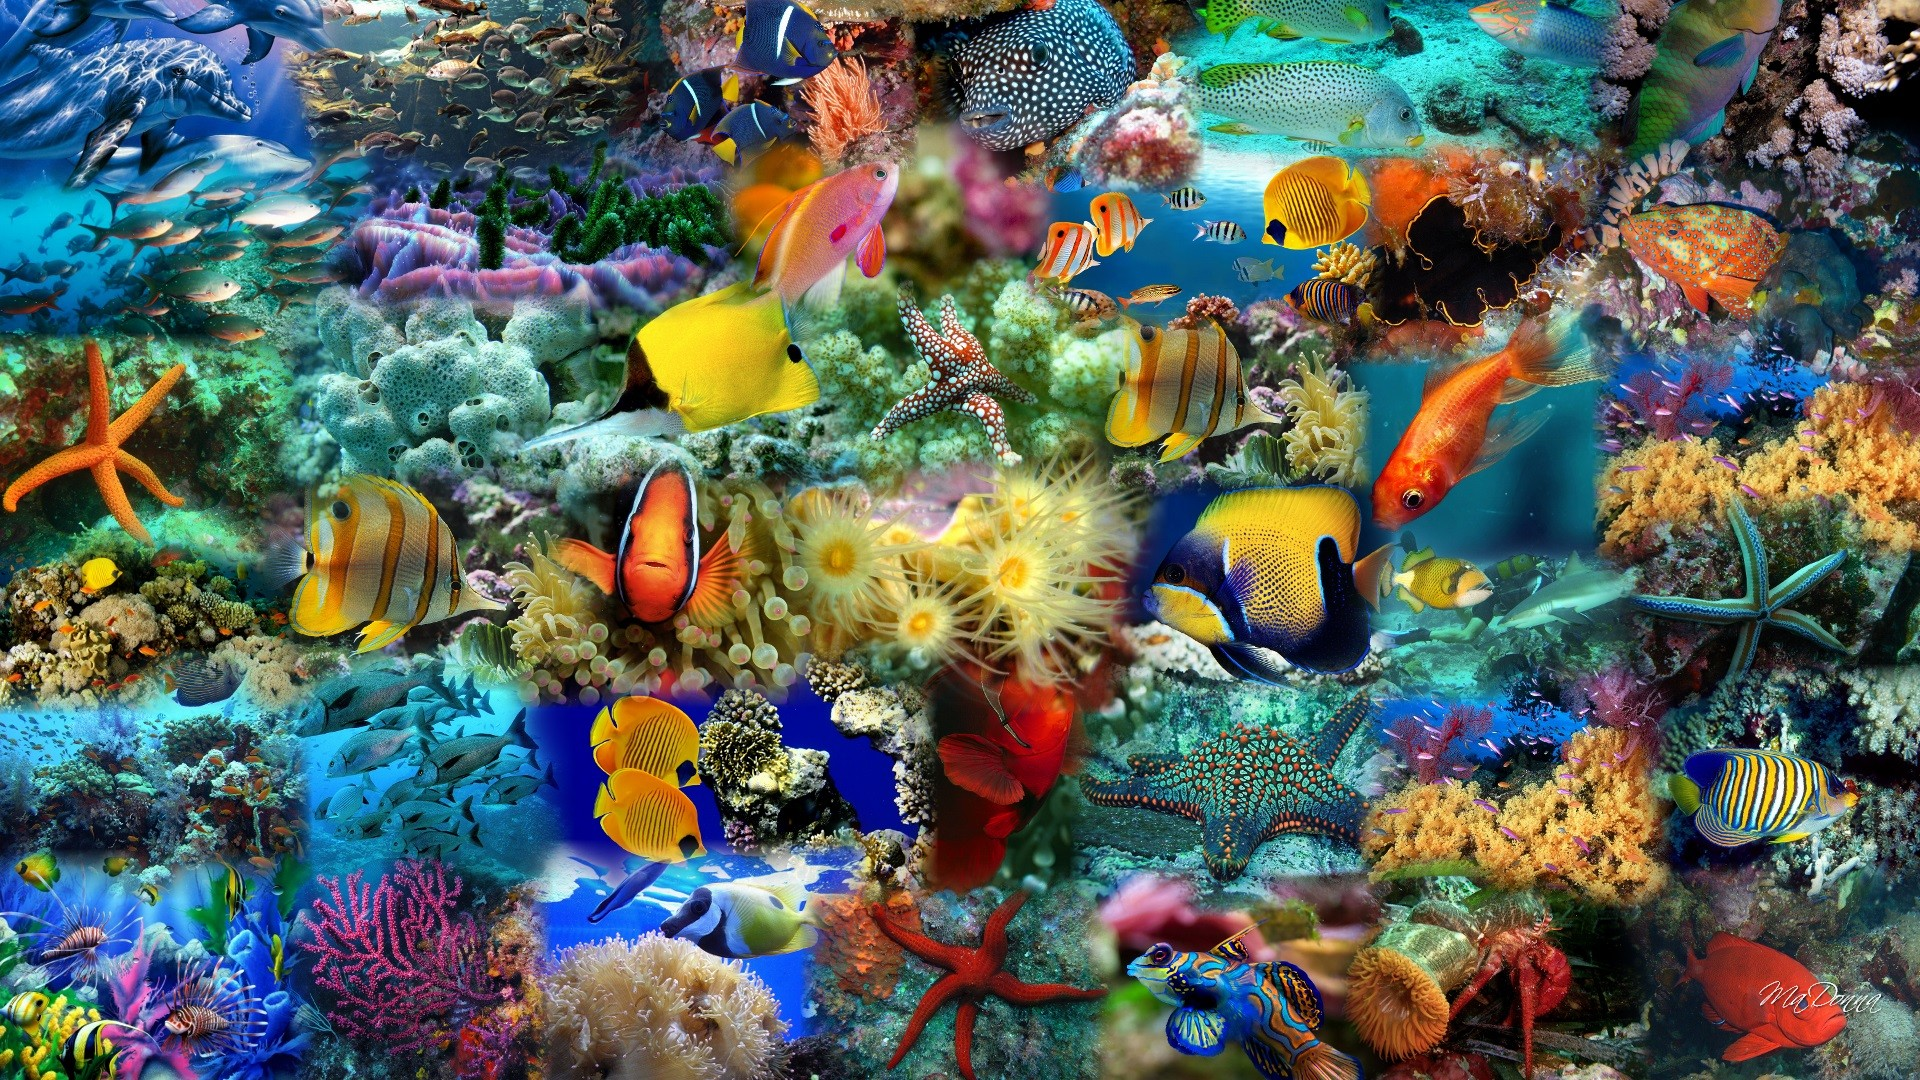 Colorful Food Wallpaper Free Download: Download Colorful Fish Wallpaper Gallery